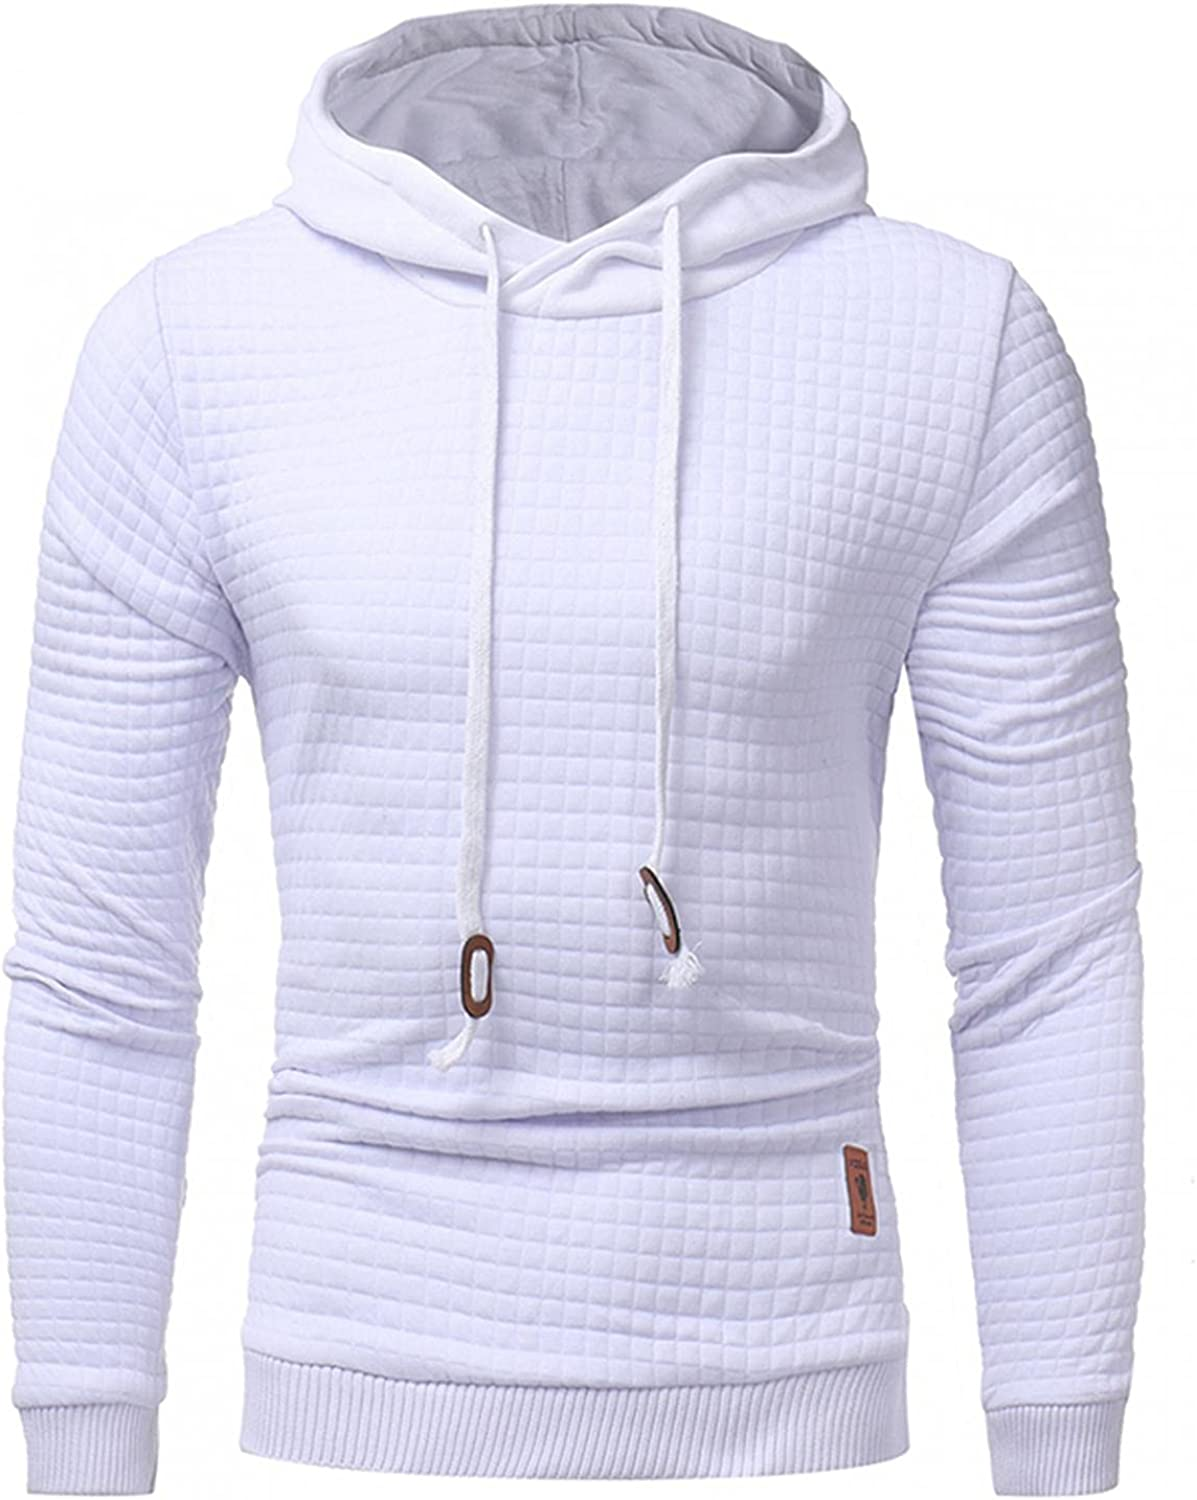 Hoodies for Men Pullover Fashion S Selling and selling Philadelphia Mall Athletic Sport Hooded